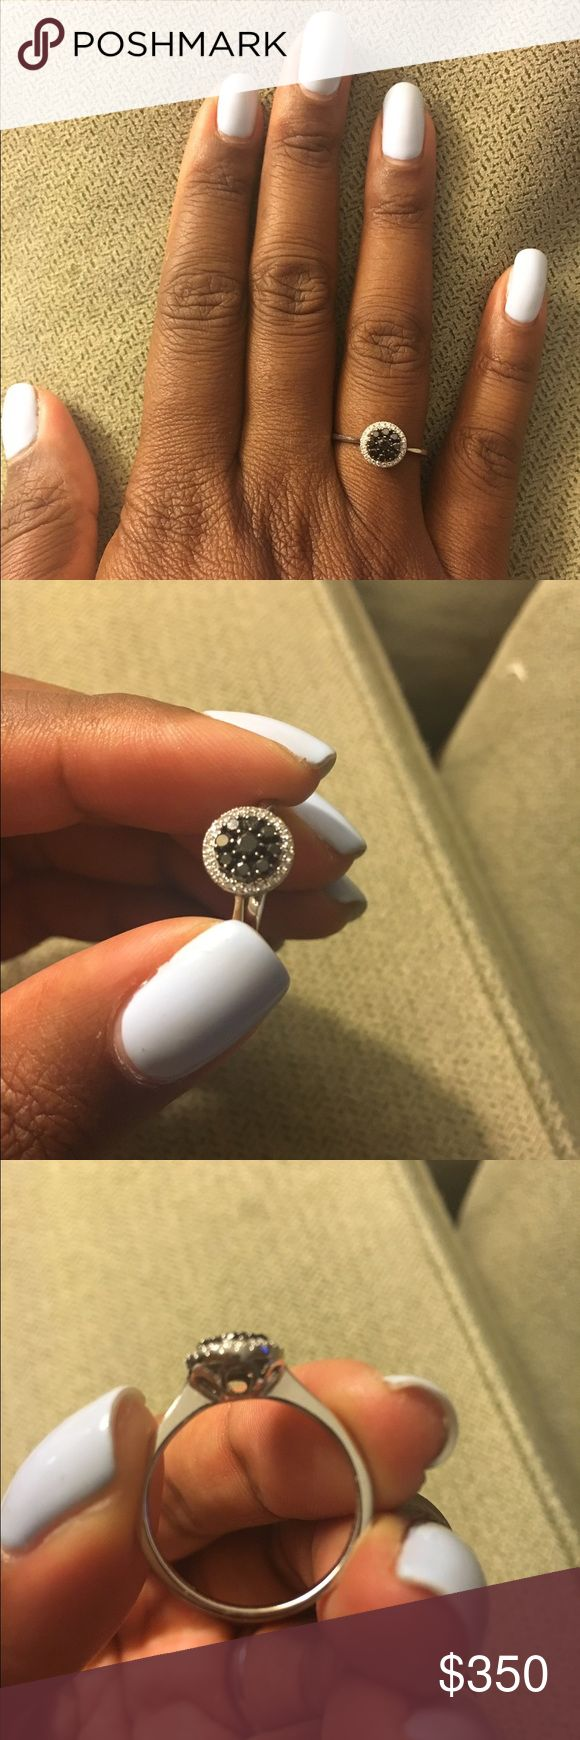 White gold and black and white diamond ring I bought this ring as a post-bar exam present for myself, but I no longer wear it often. I bought it in 2012 on board on a cruise ship. It came with authentication papers, which I will post if I can find them. Please feel to make reasonable offers! Jewelry Rings